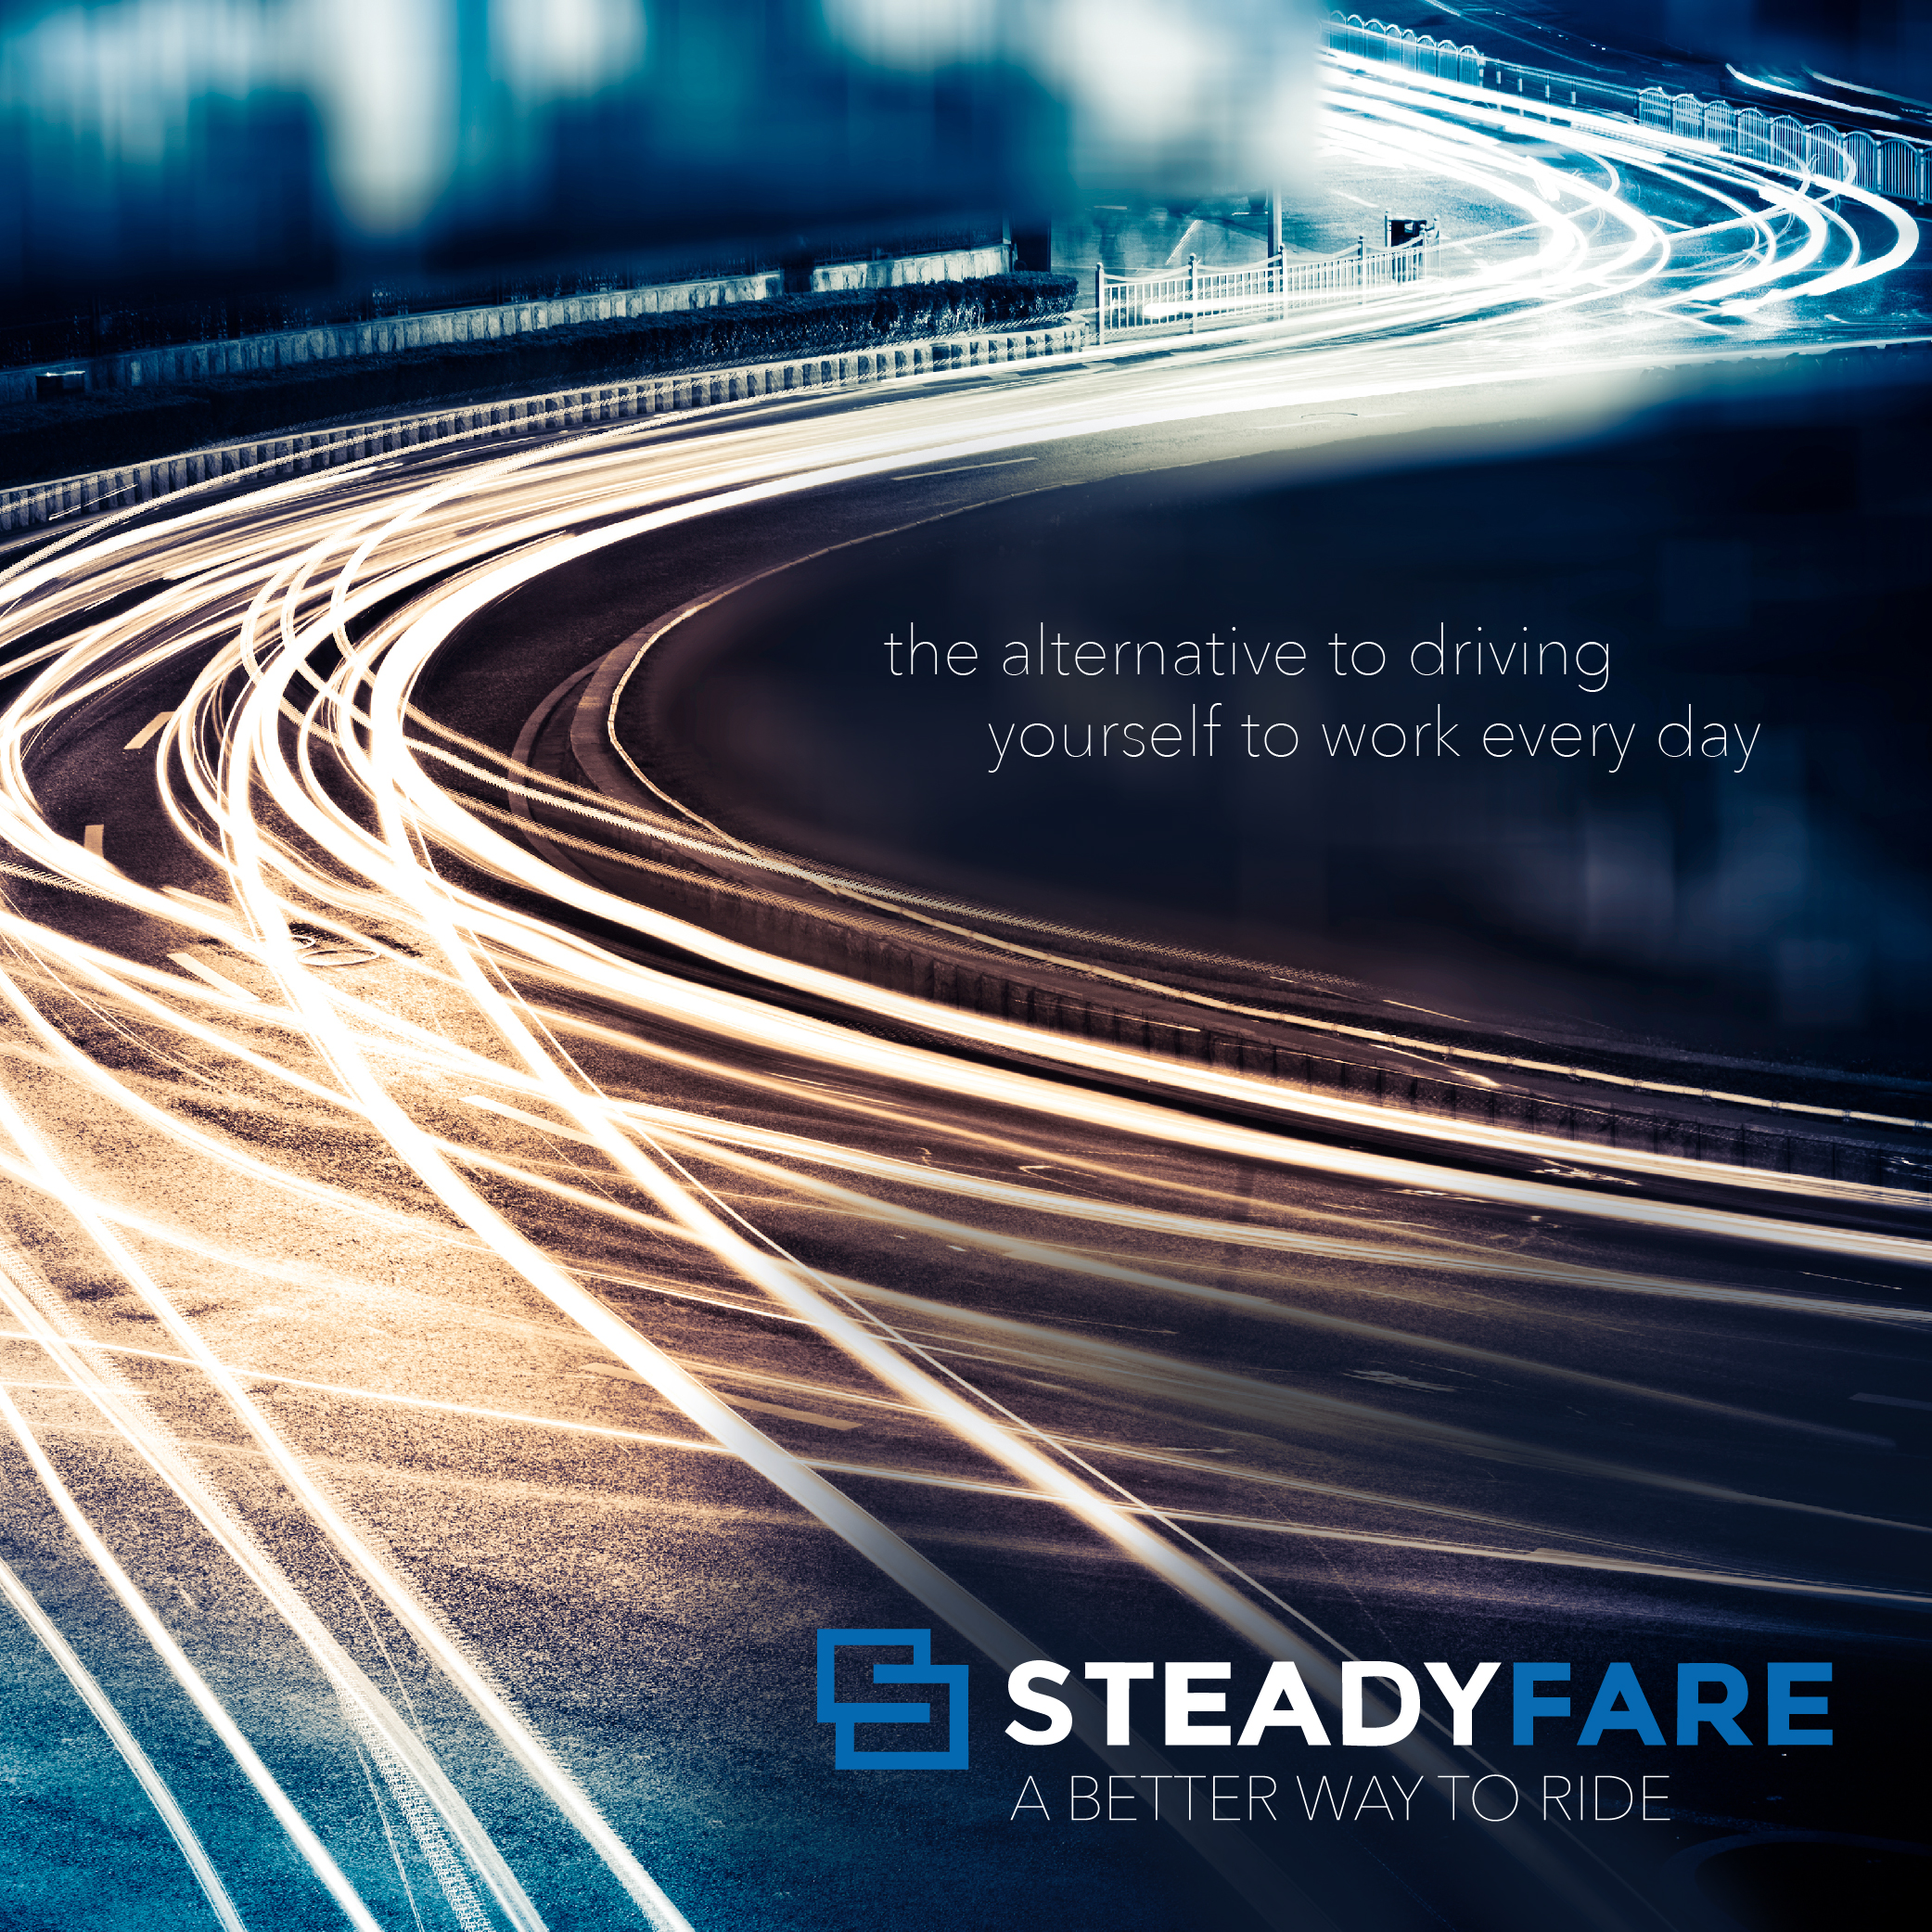 4Reasons to Commute with SteadyFare  Your morning commute can be a pain, especially if you don't have a vehicle. Finding reliable,convenient transportation can sometimes feel impossible. But you don't have to… countinue reading •••